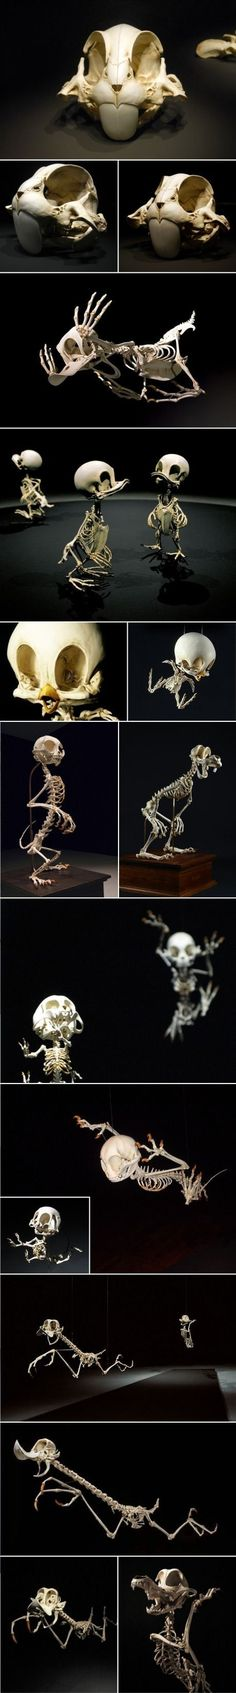 Skeletons of Warner Bros. Characters. It's kind of creepy but fun at the same time.